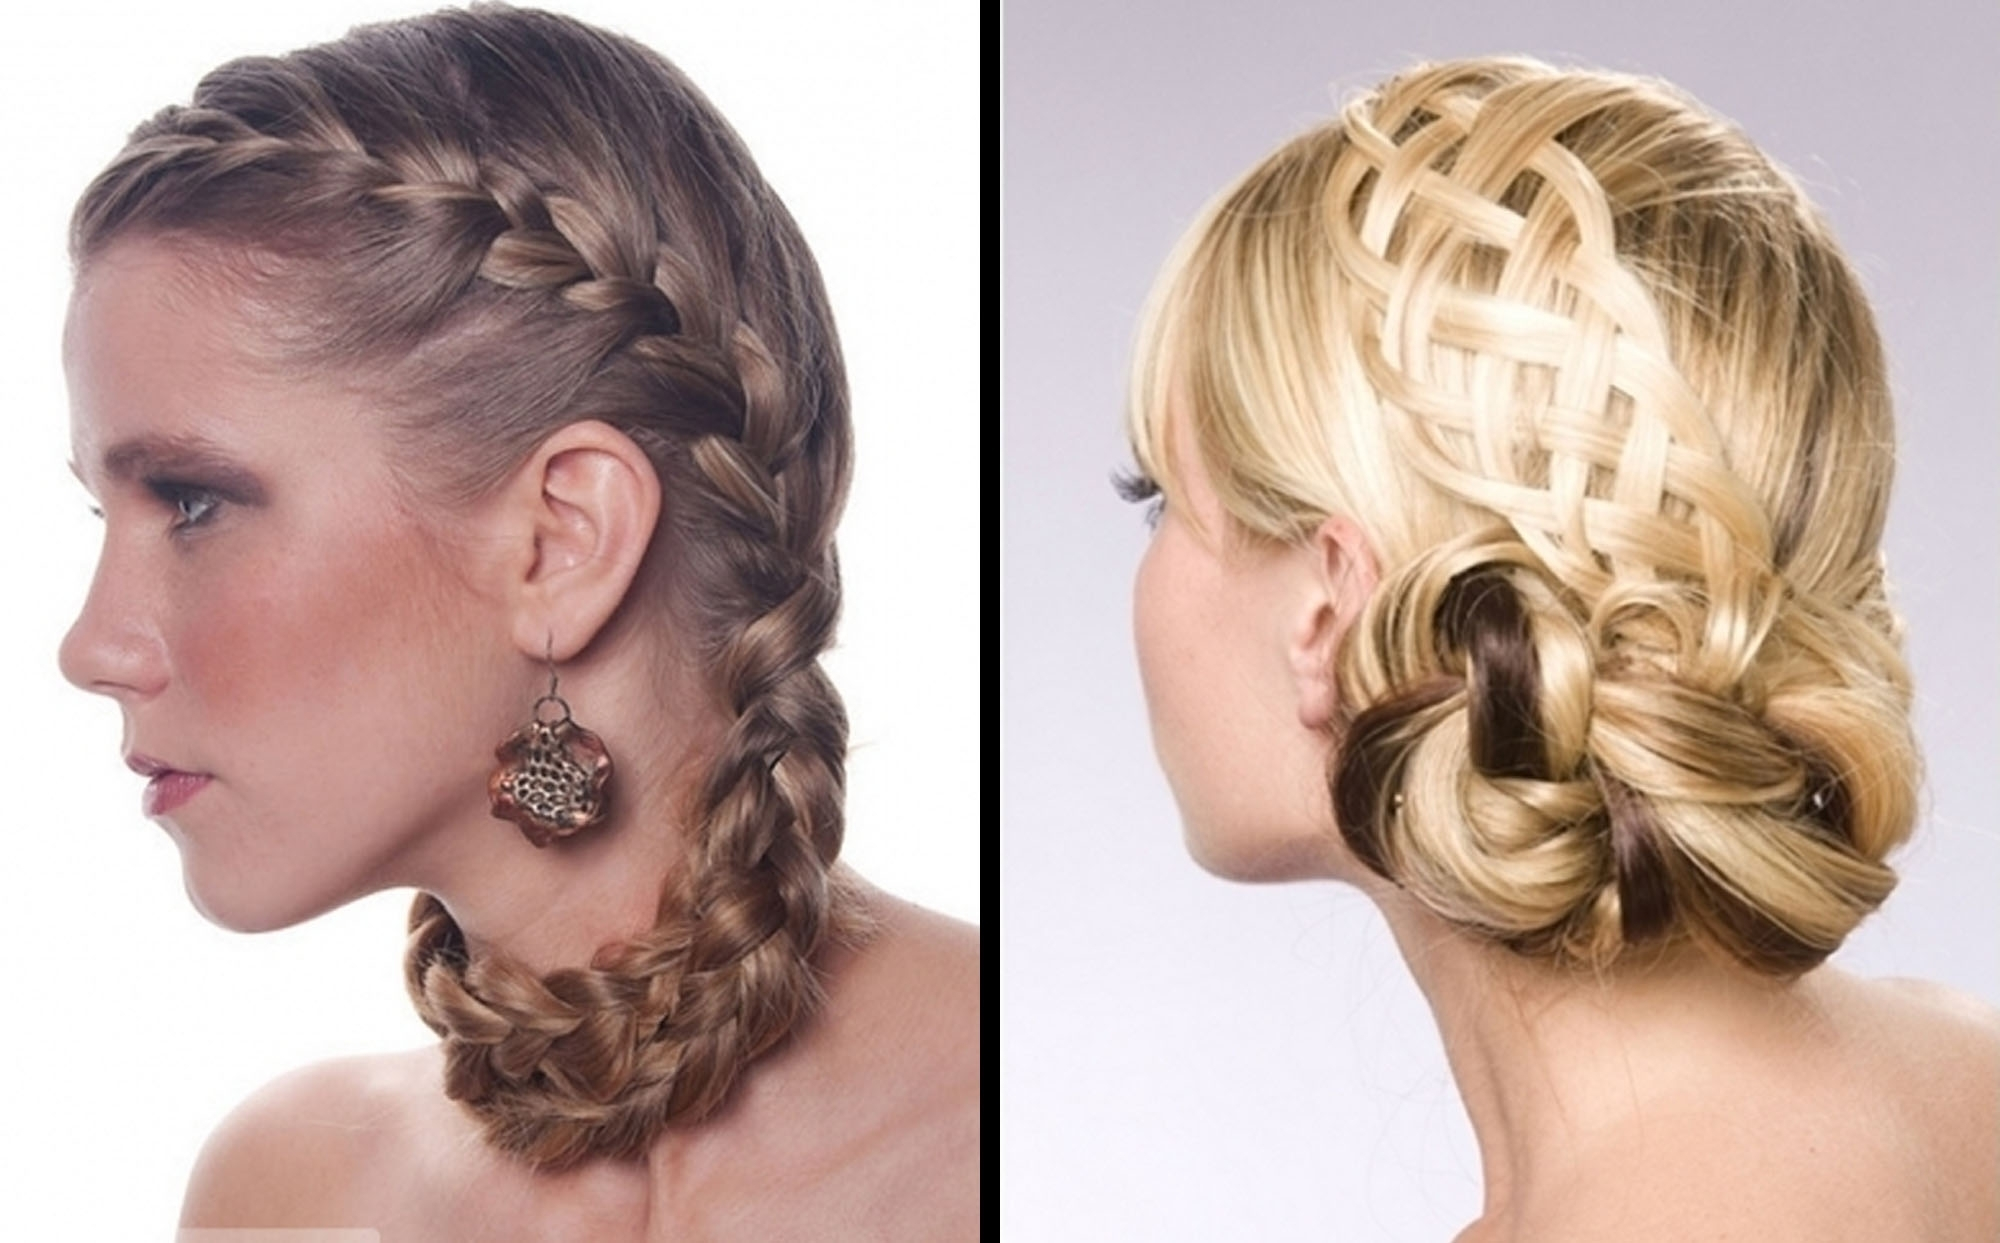 Hair Braided Updo Hairstyles Salon Formal | Medium Hair Styles Ideas With Regard To Braided Hair Updo Hairstyles (View 5 of 15)